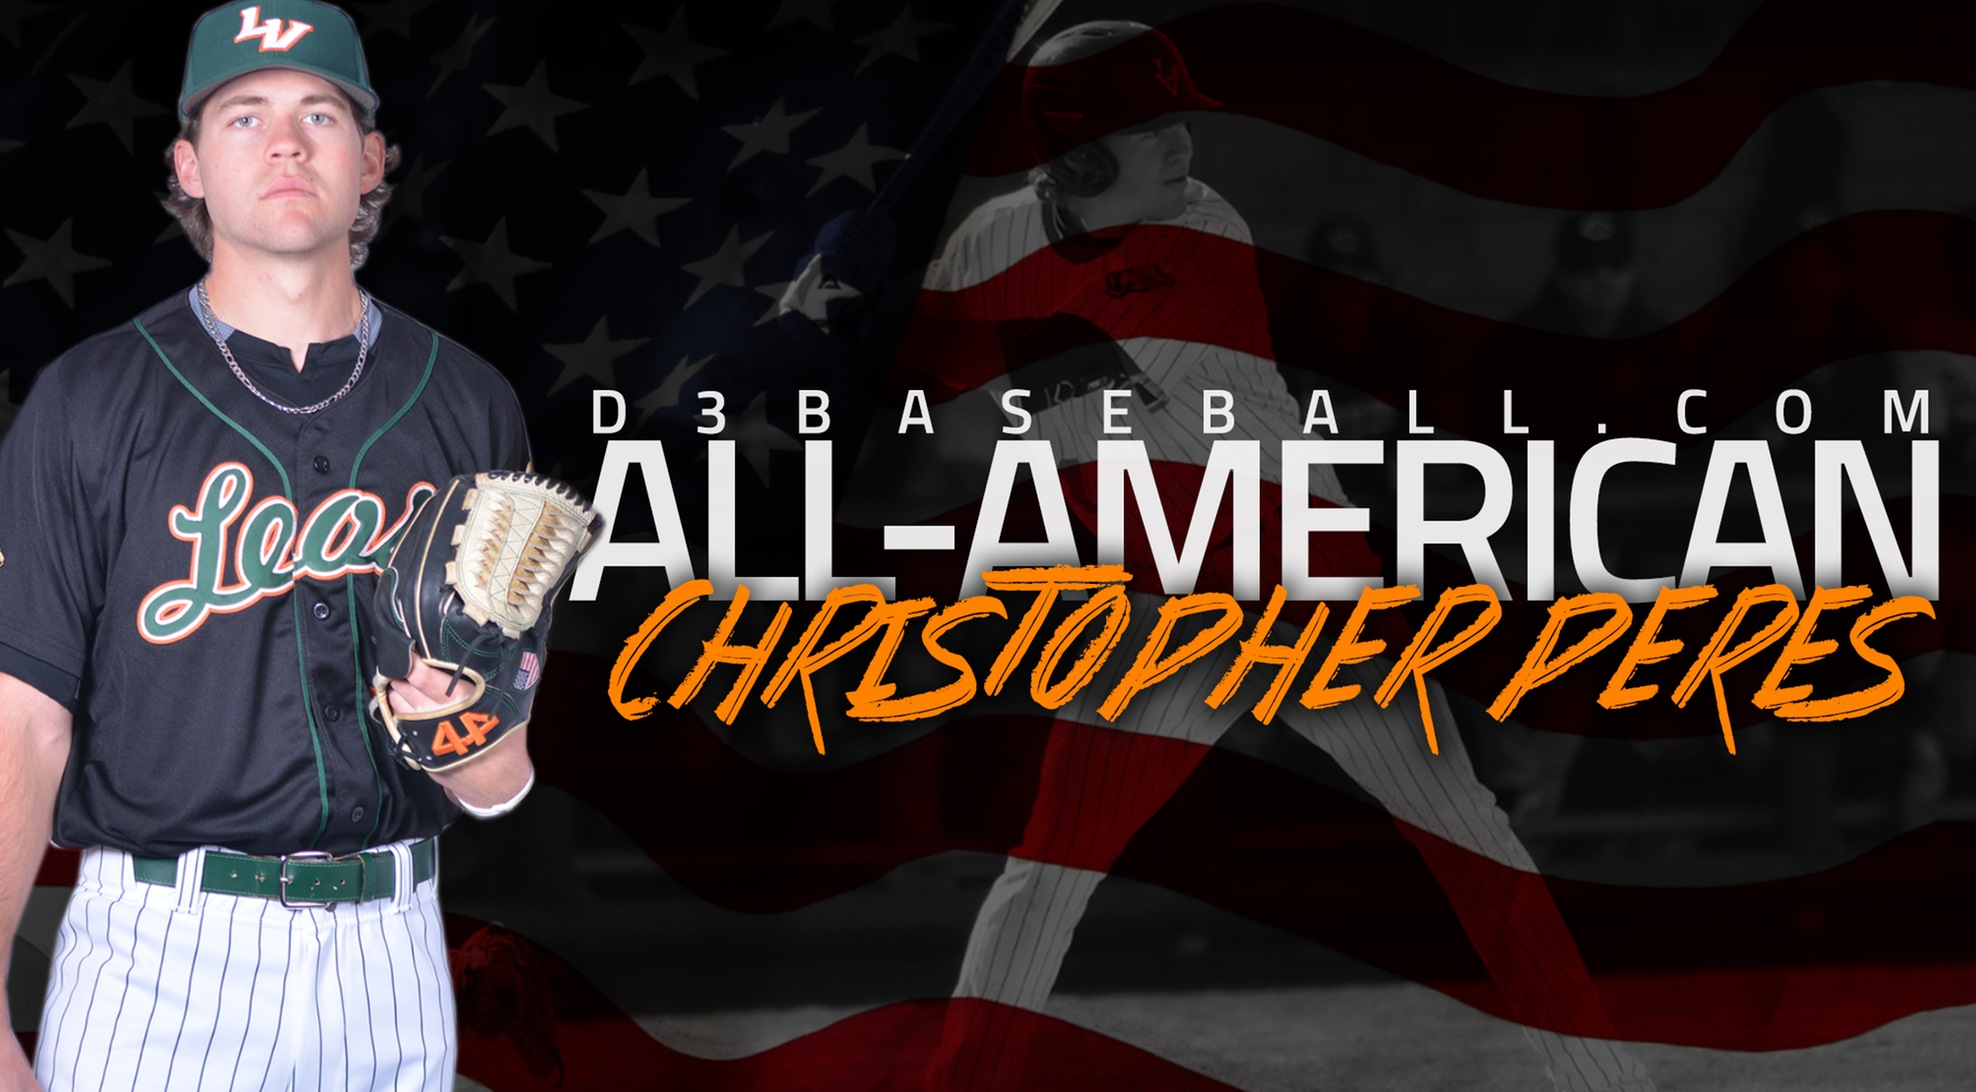 Peres Named D3baseball.com All-American